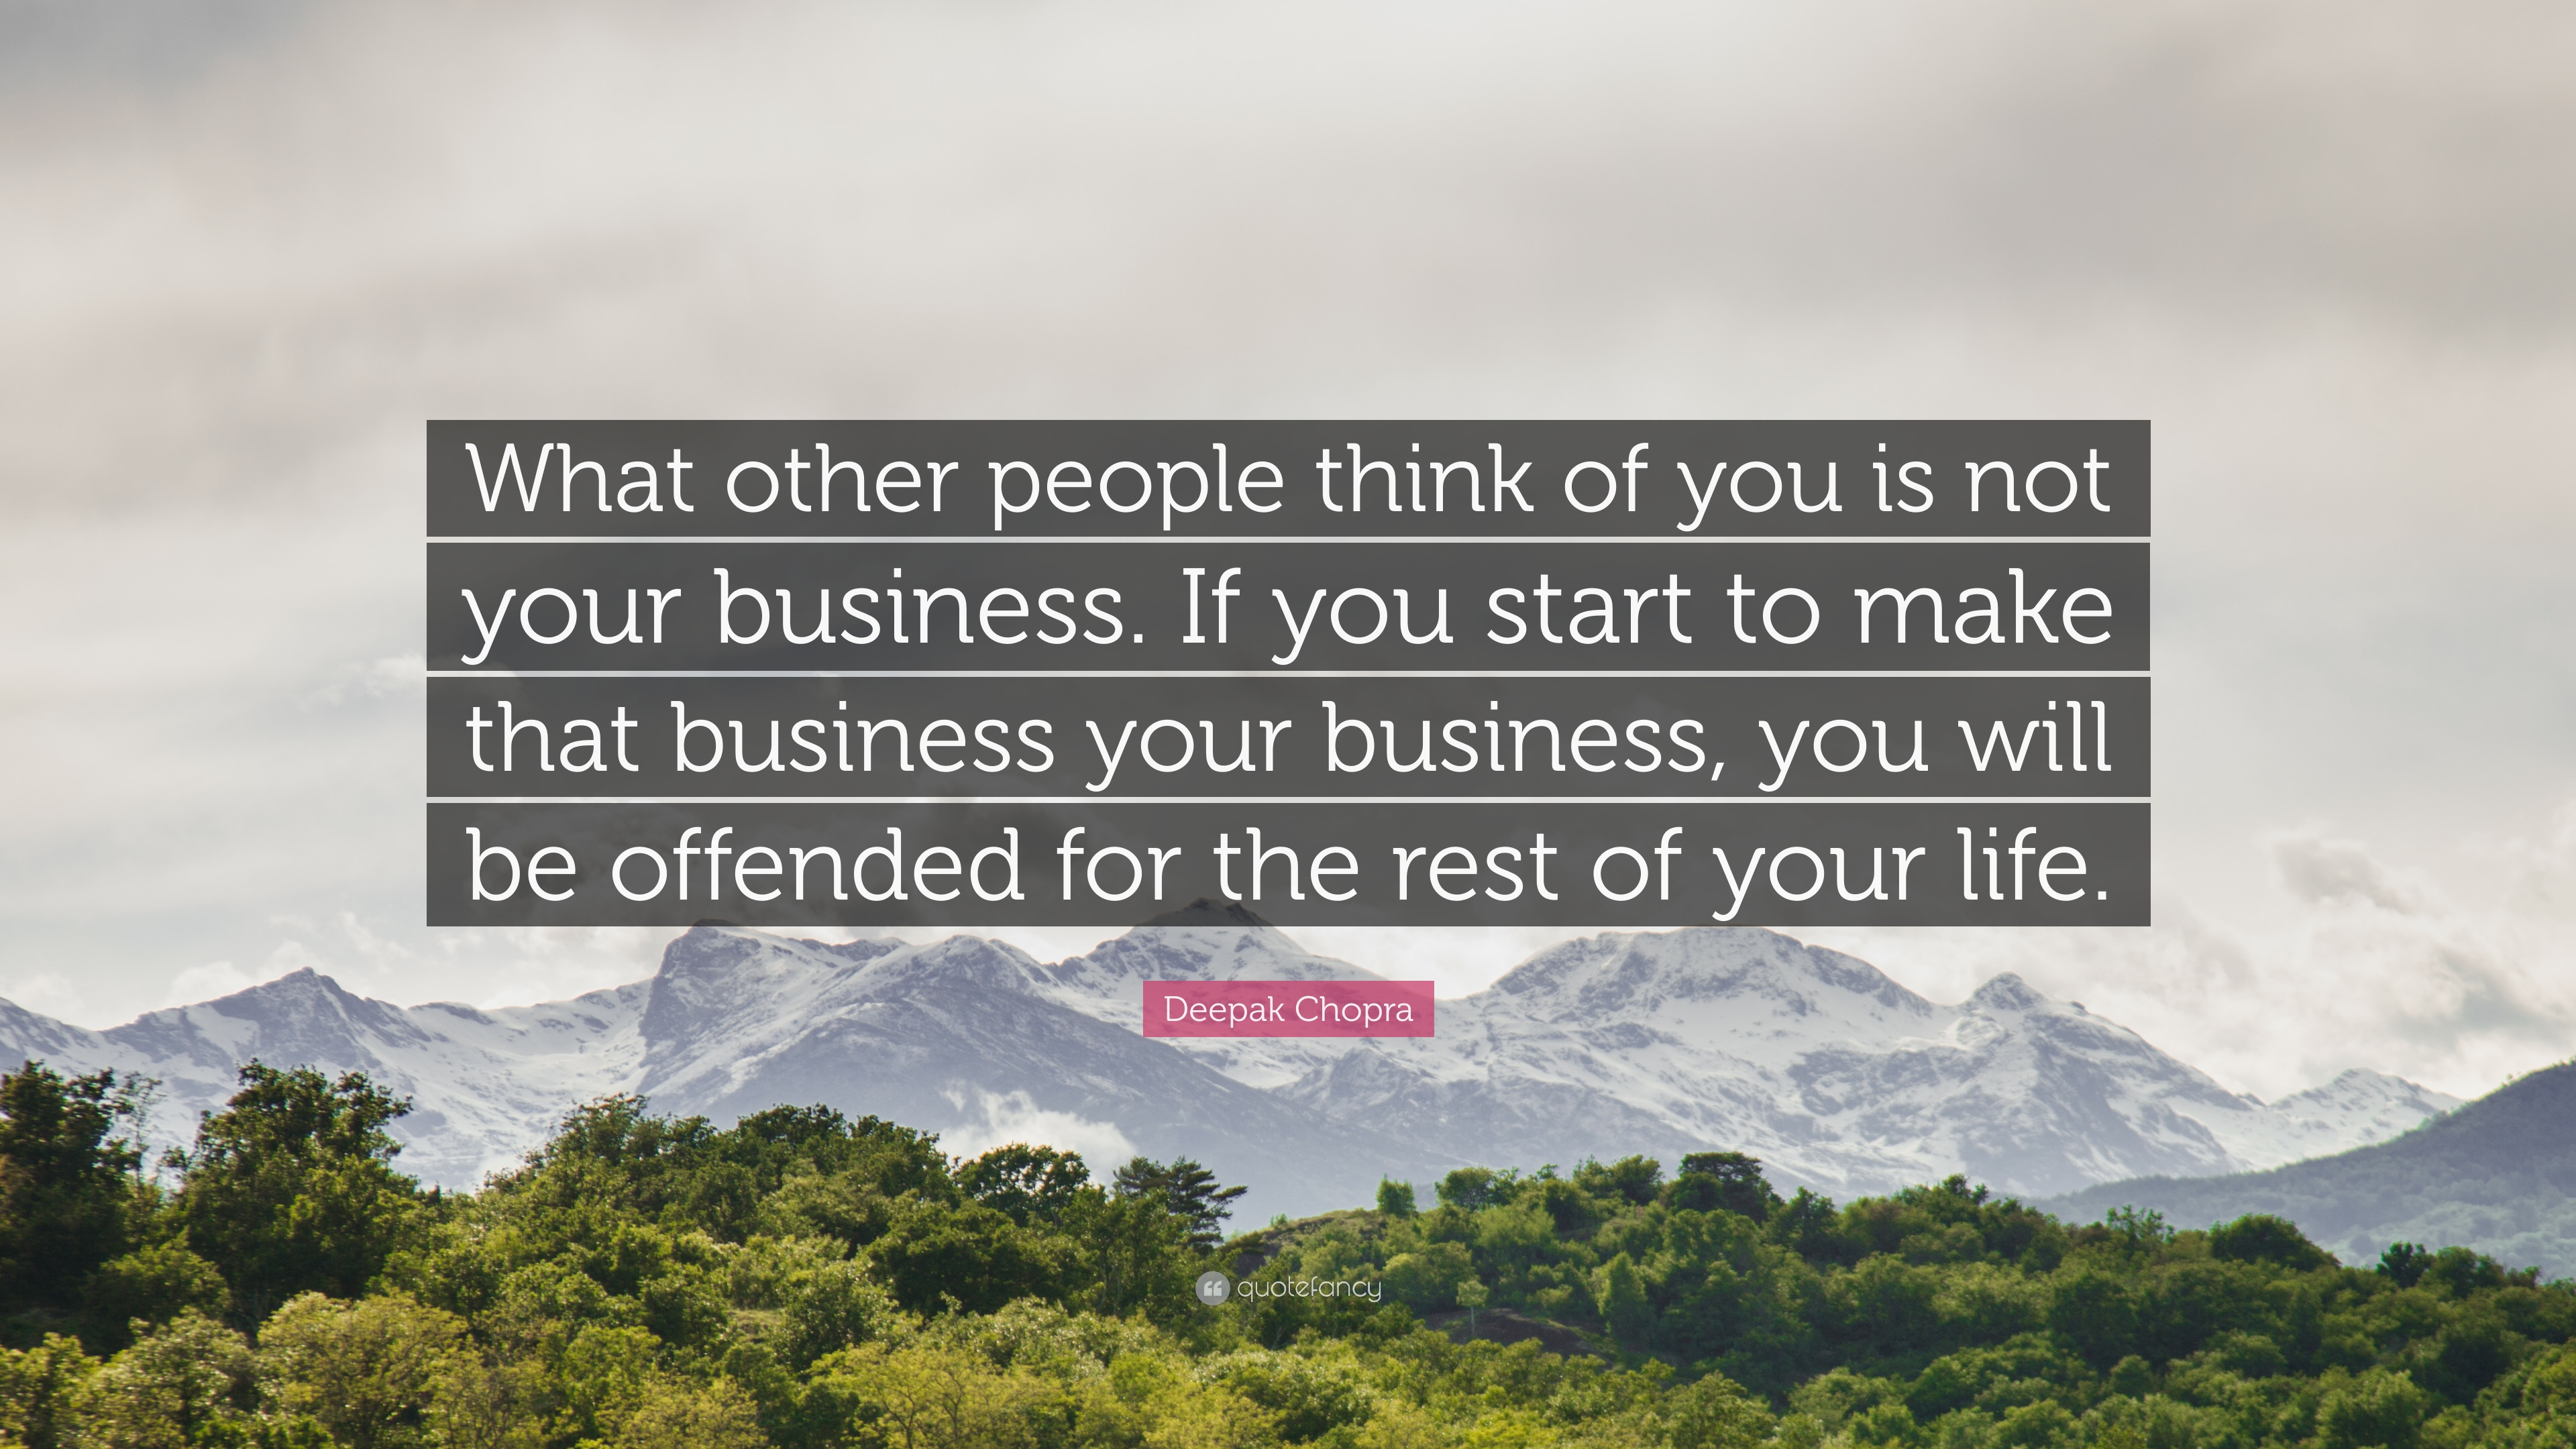 Deepak Chopra Quote: U201cWhat Other People Think Of You Is Not Your Business.